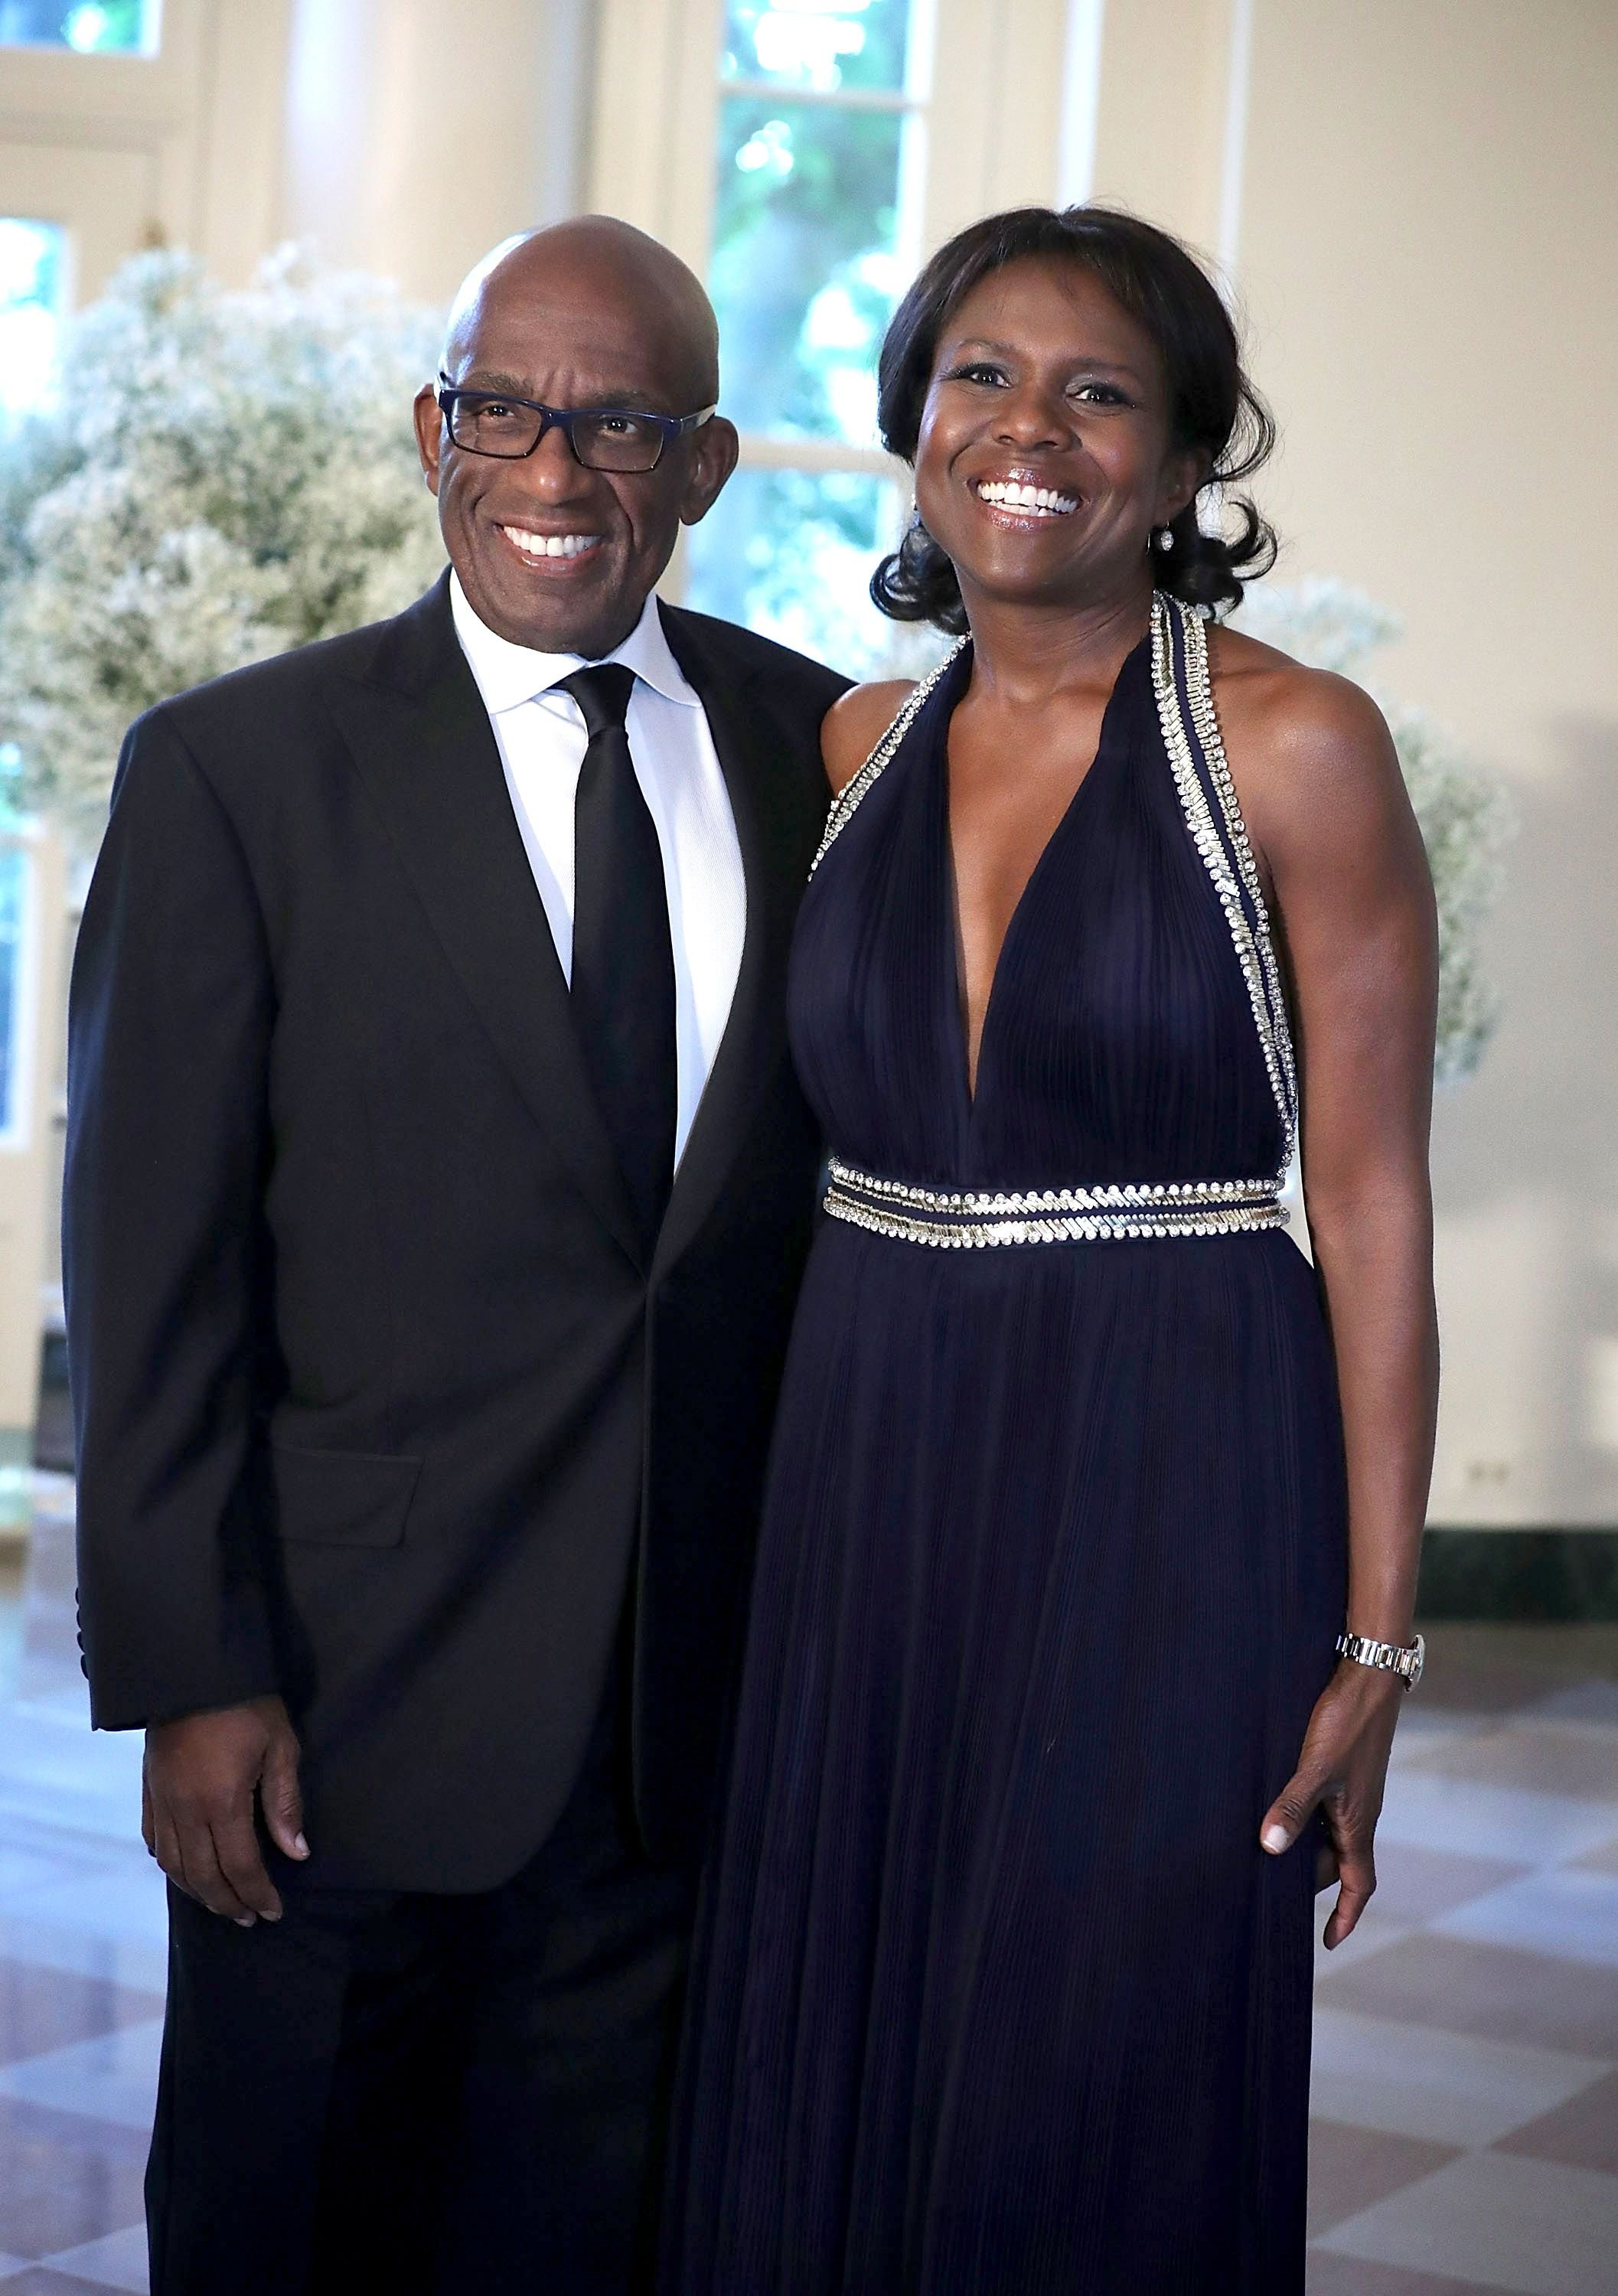 Al Roker and his wife Deborah Roberts arrive at a Nordic State Dinner May 13, 2016 at the White House in Washington. | Photo: Getty Images.